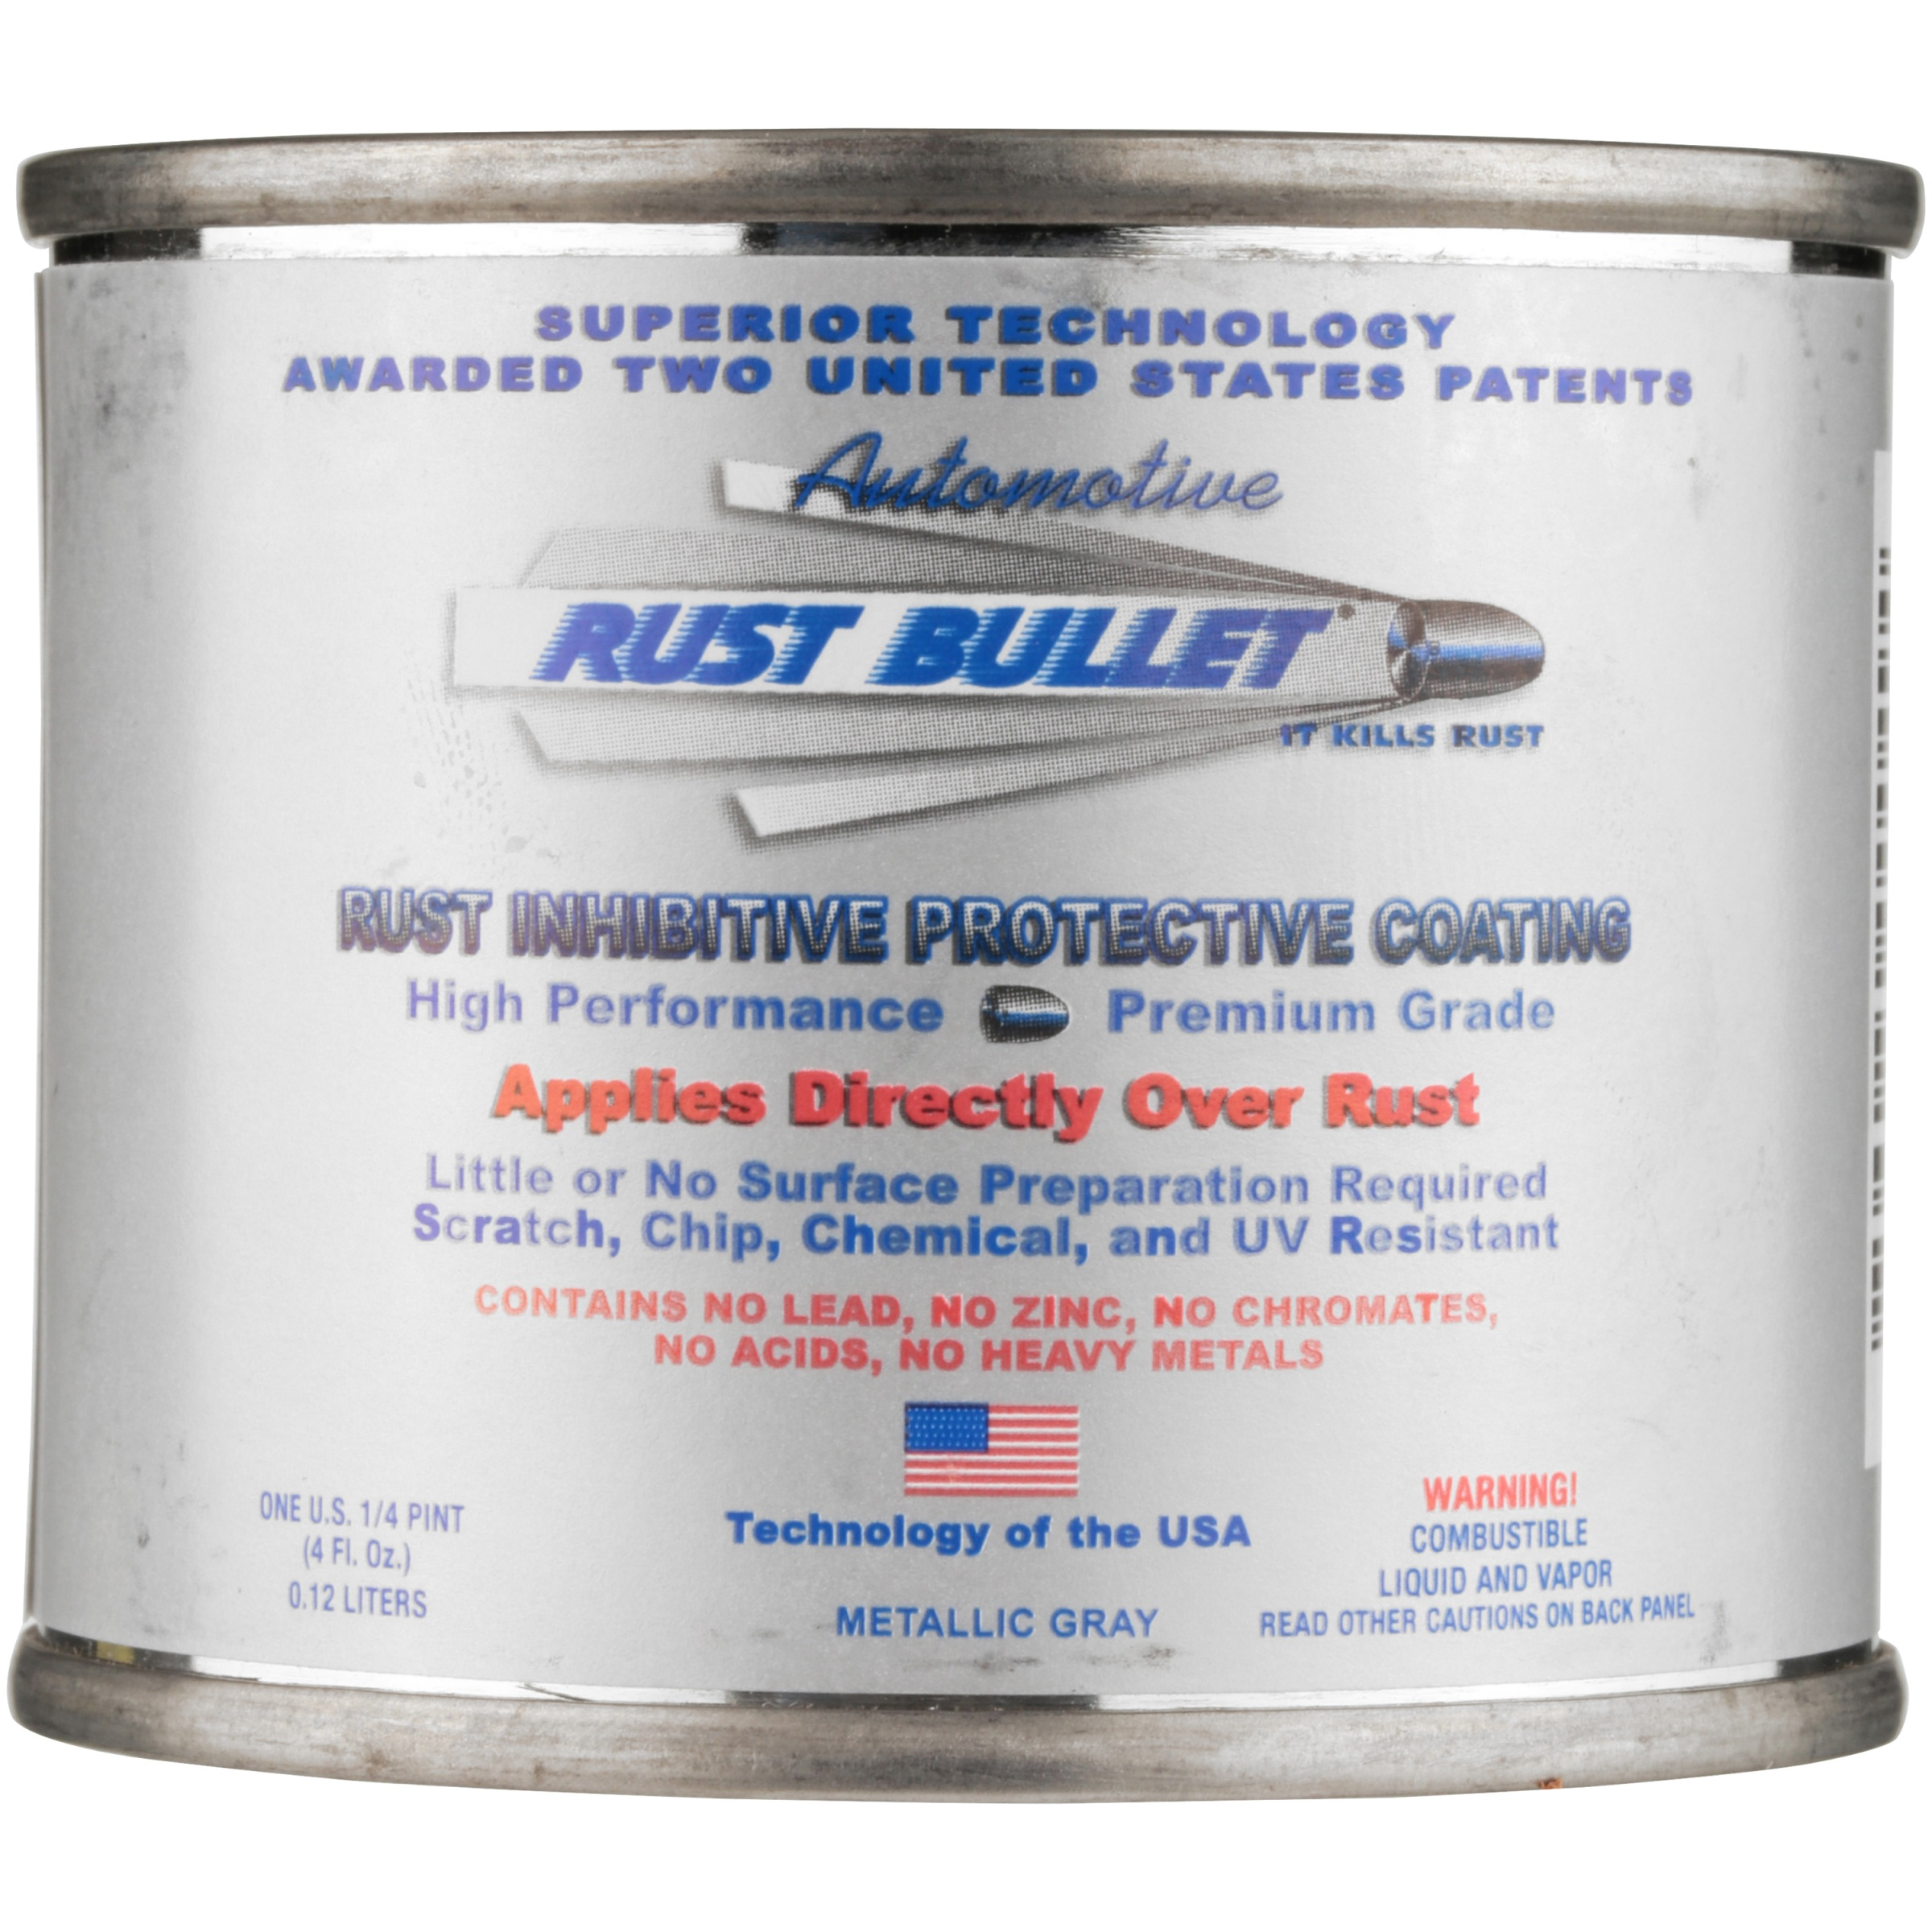 Rust Bullet® Metallic Gray Automotive Rust Inhibitive Protective Coating 0.25 pt. Can